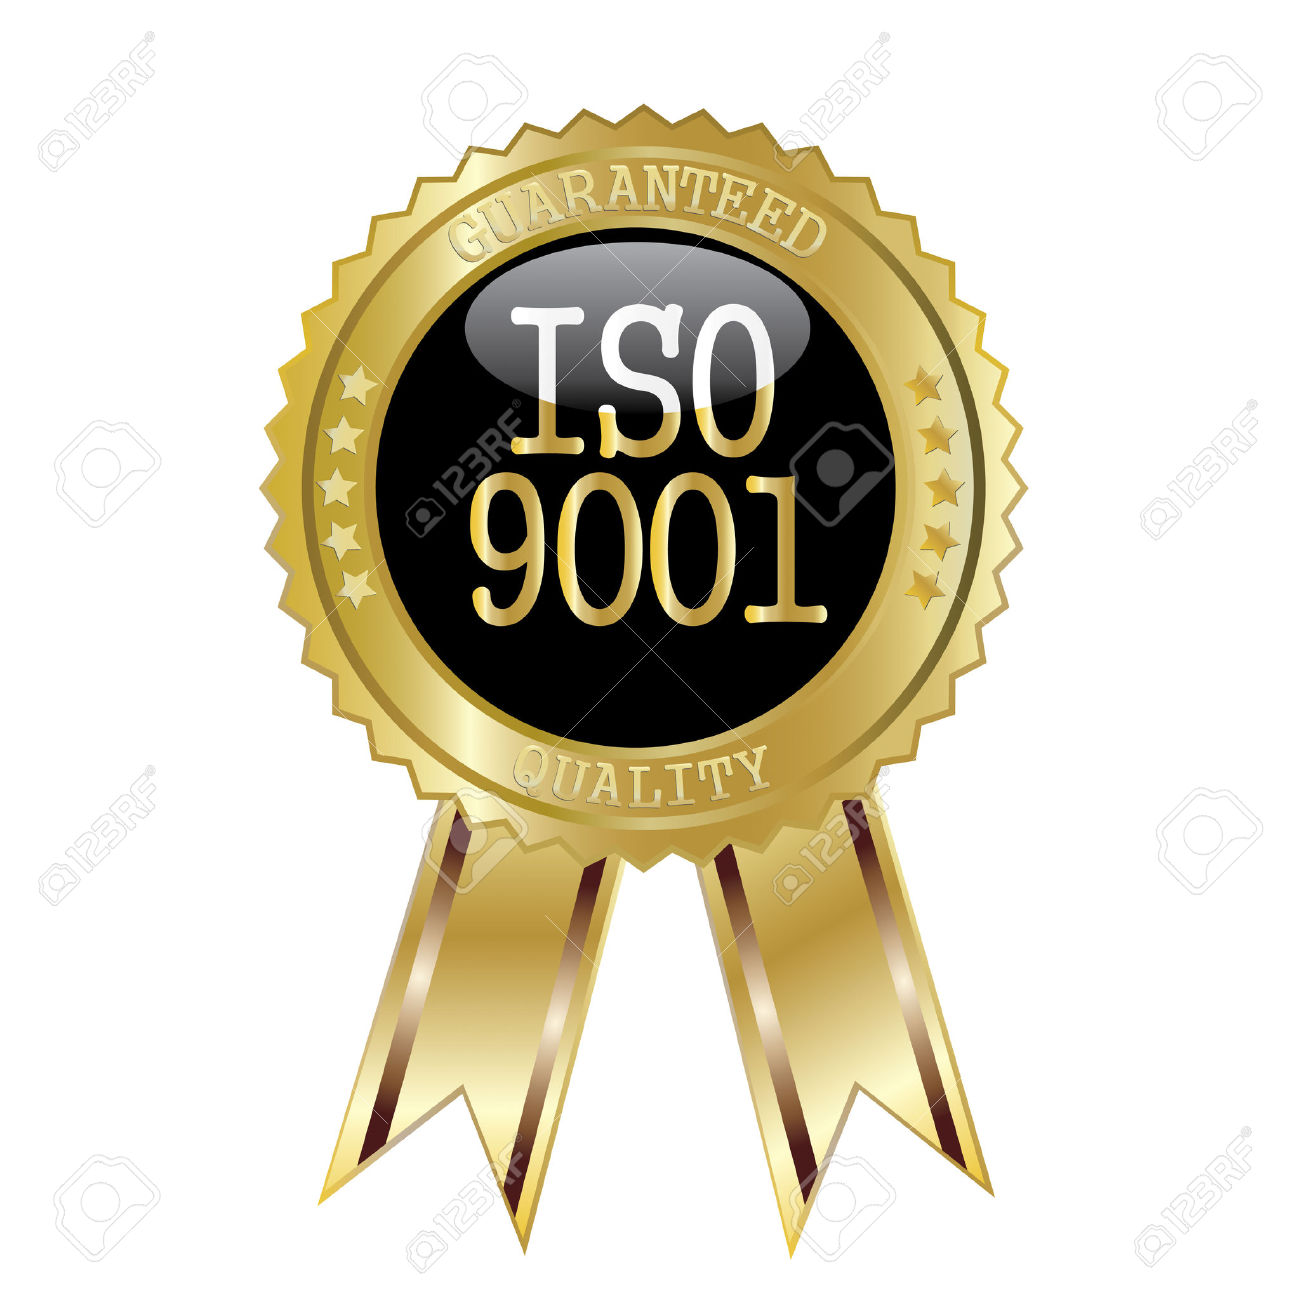 22240712-iso-quality-icon-Stock-Photo